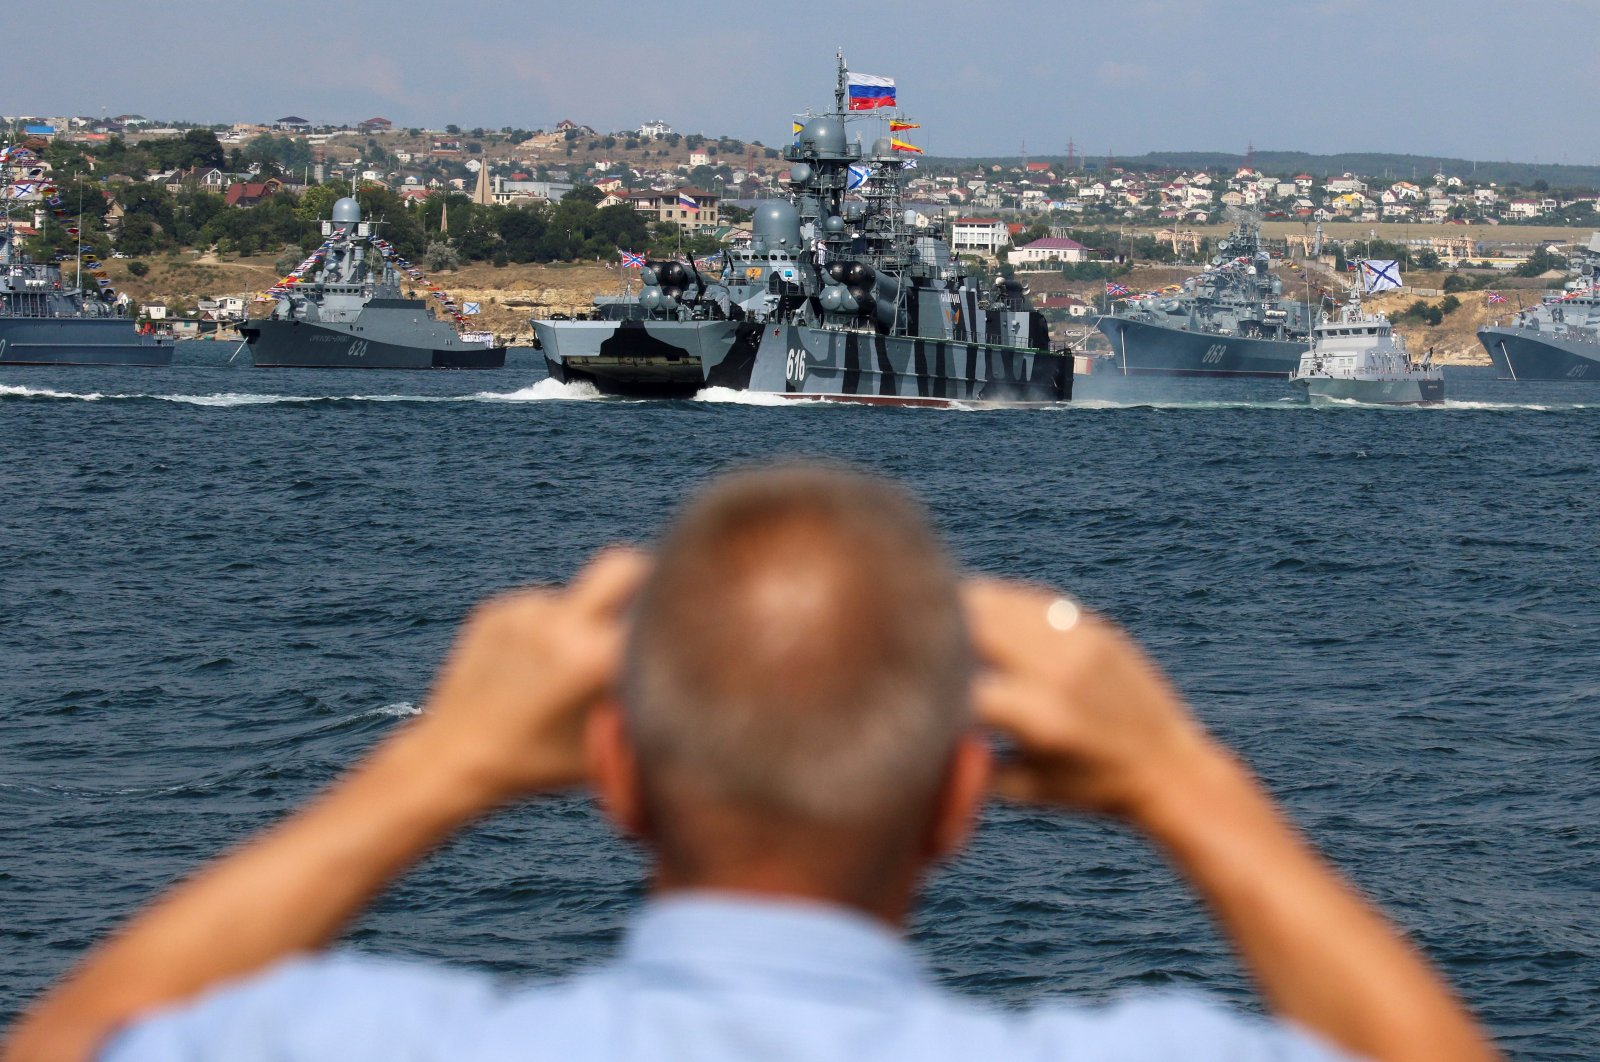 A man films the Russian Navy's warships ahead of the Navy Day parade in the Black Sea port of Sevastopol, occupied Crimea, July 23, 2021. (REUTERS Photo)